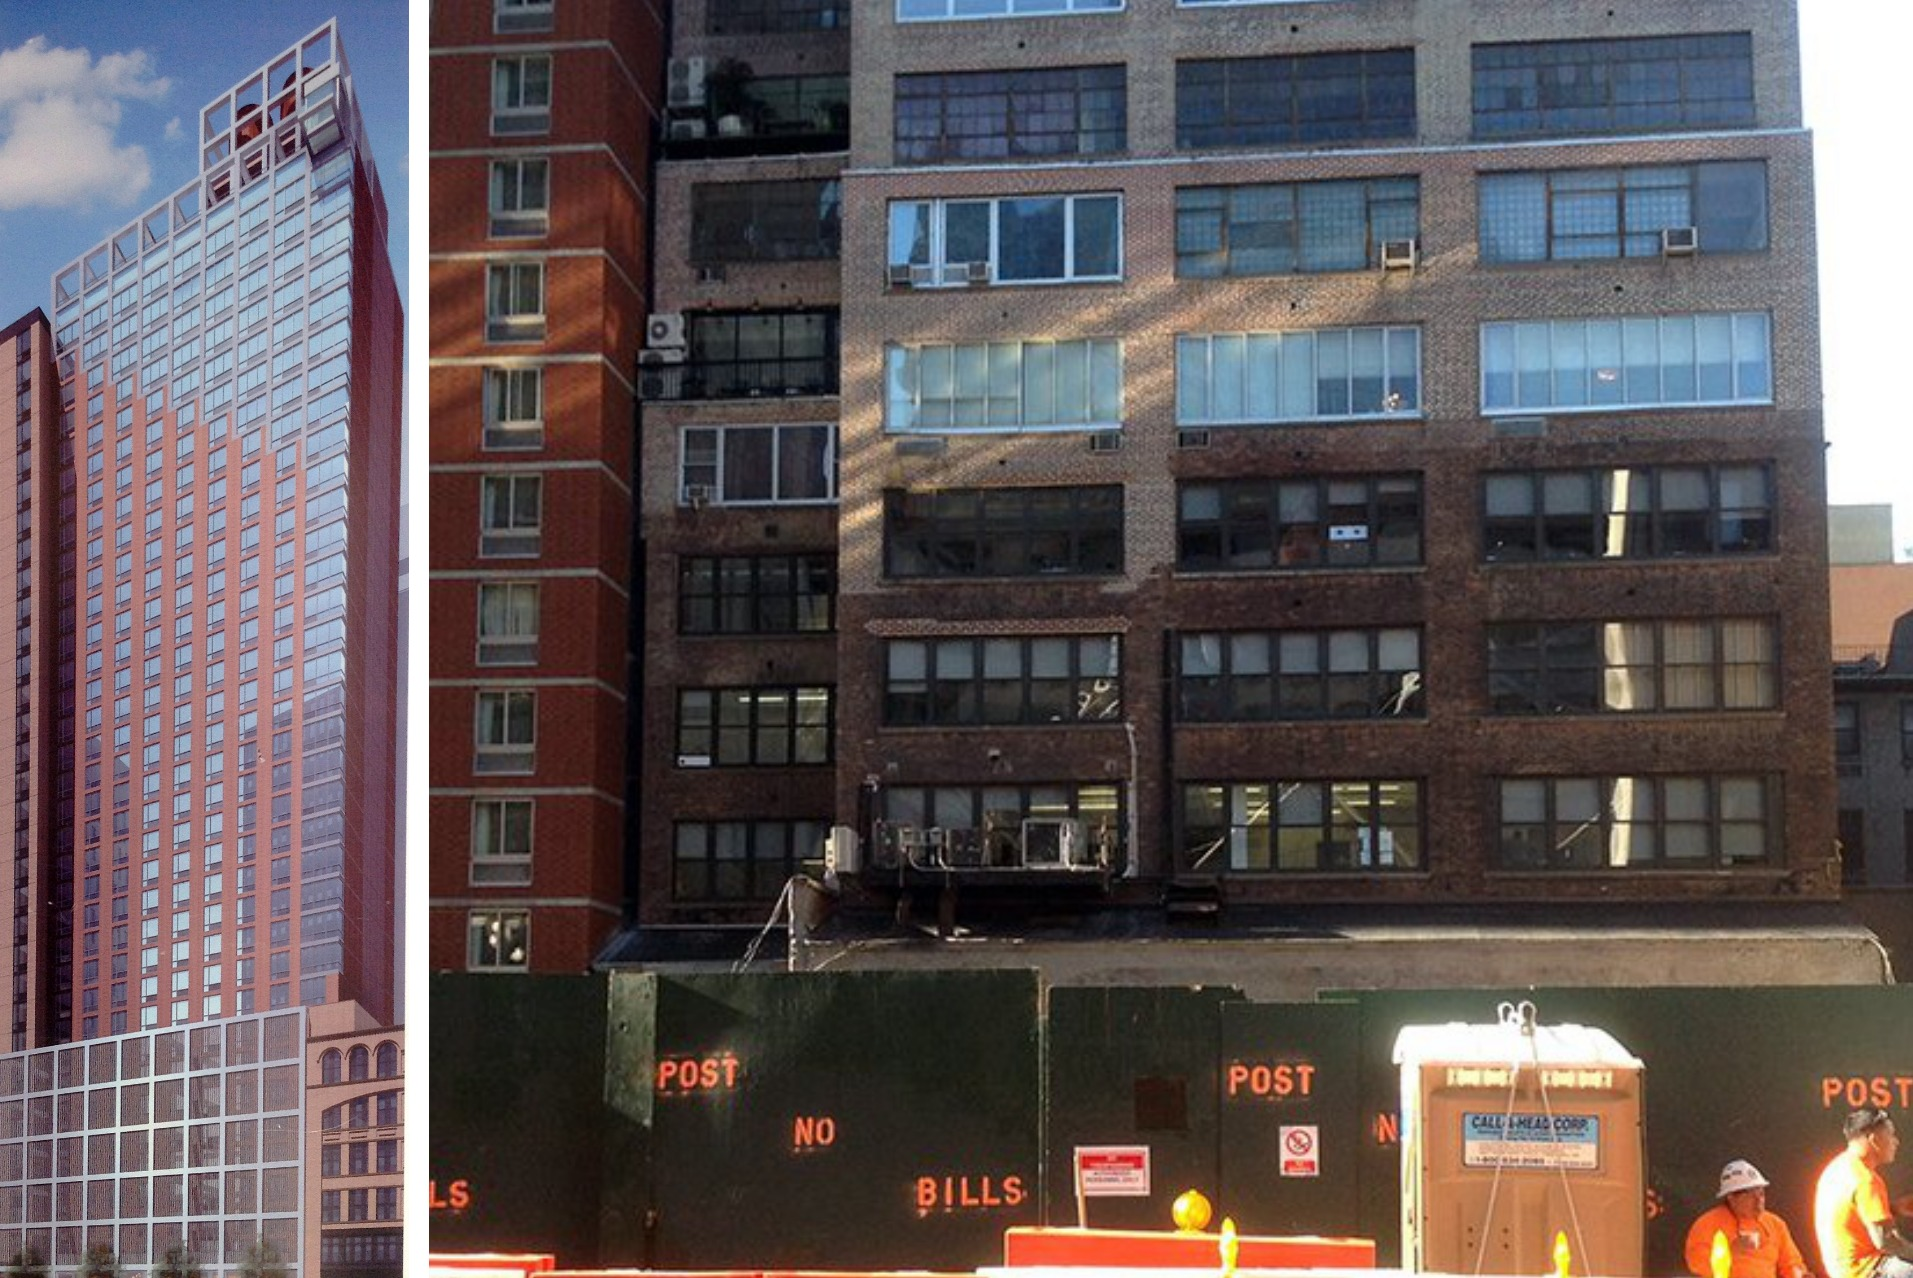 story doubletree hotel by gene kaufman coming to midtown west 6sqft